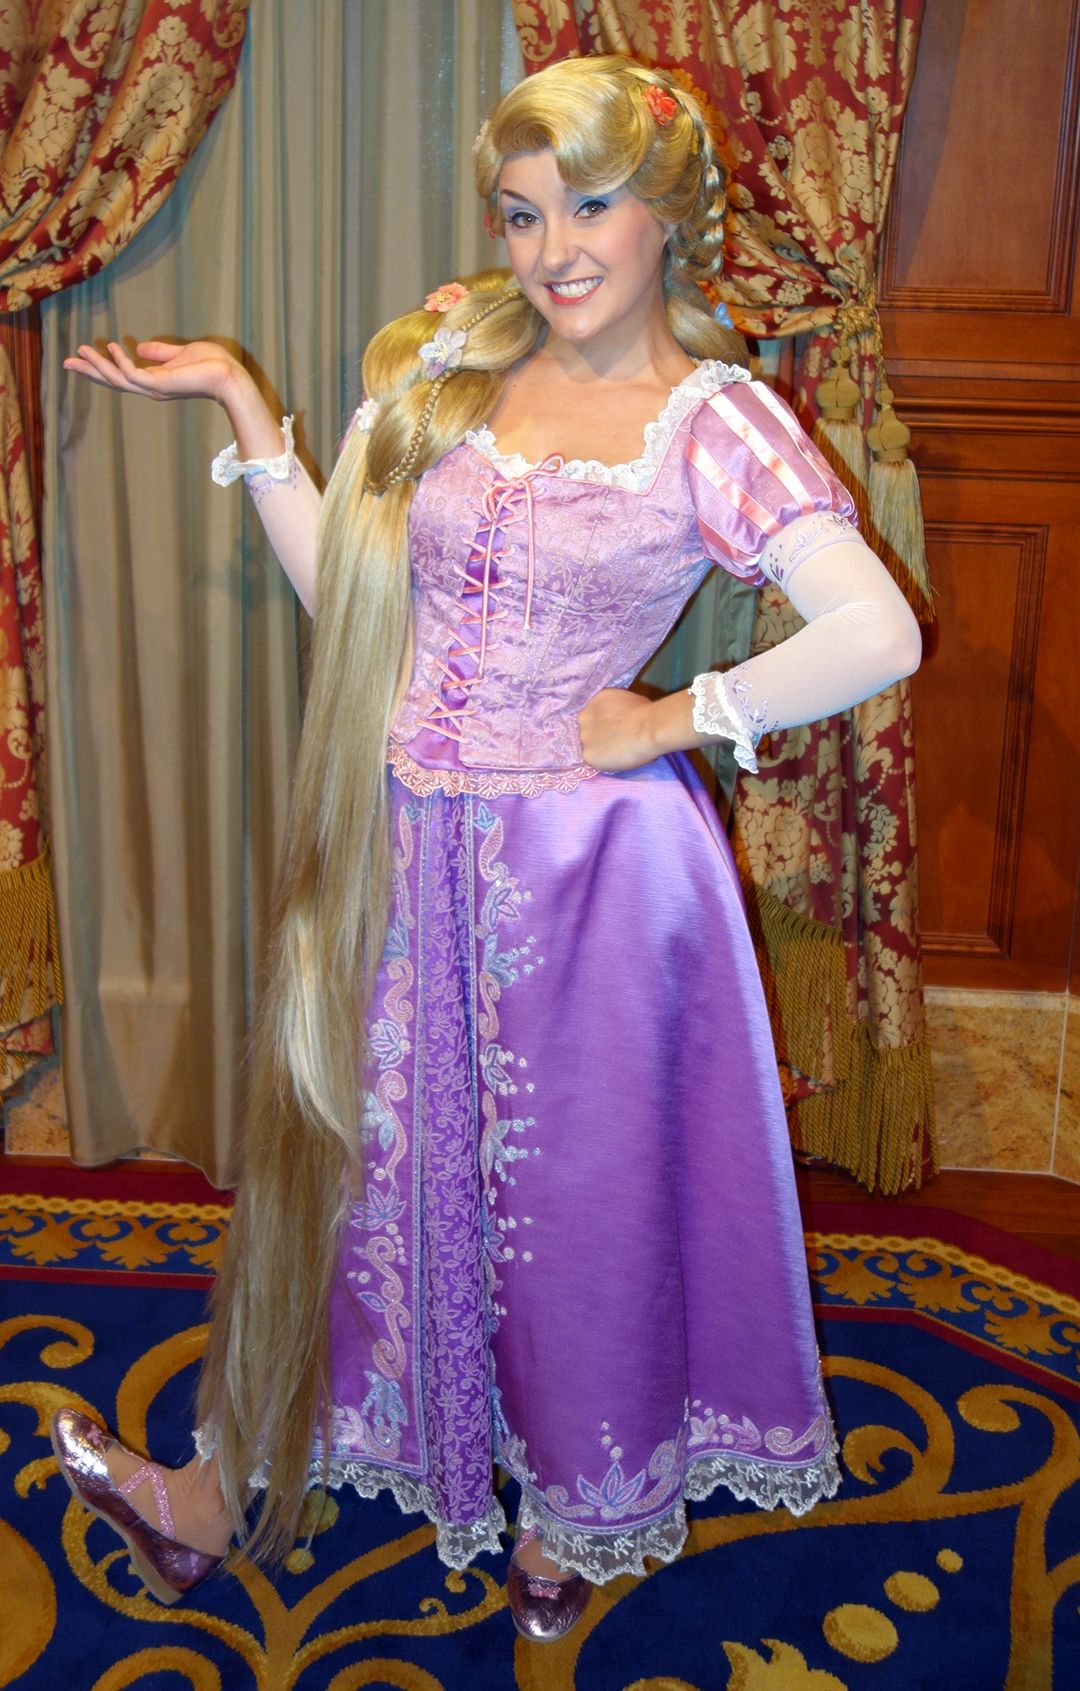 Forced to wear dresses at disneyland stories - Rapunzel At Princess Fairytale Hall In The Magic Kingdom At Disney World